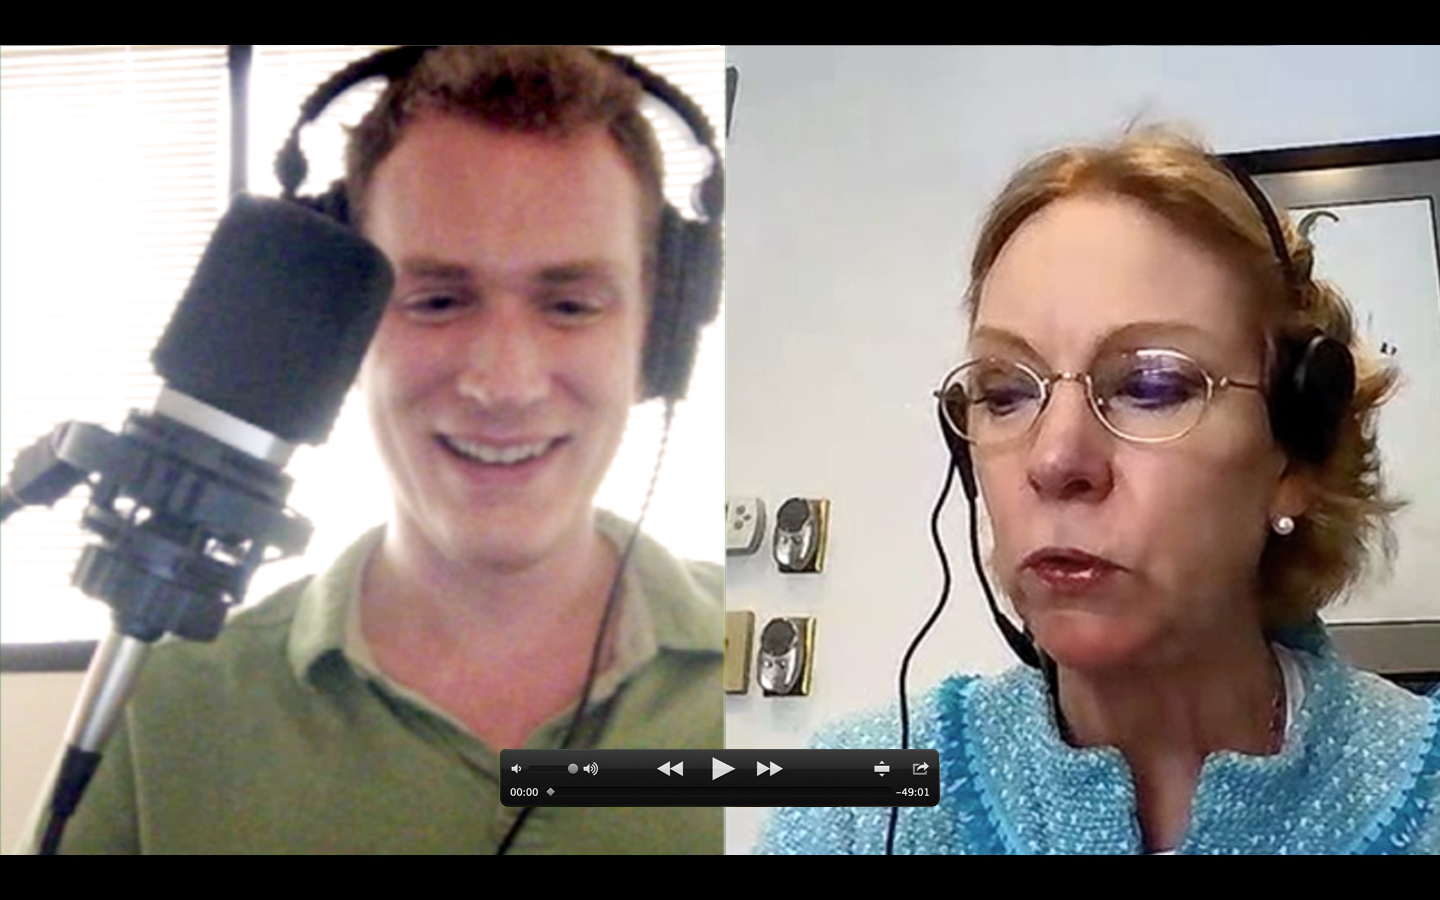 Photo of Karl Boehm and Merrie Spaeth (from left to right) recording Spiral Marketing podcast from respective studios.